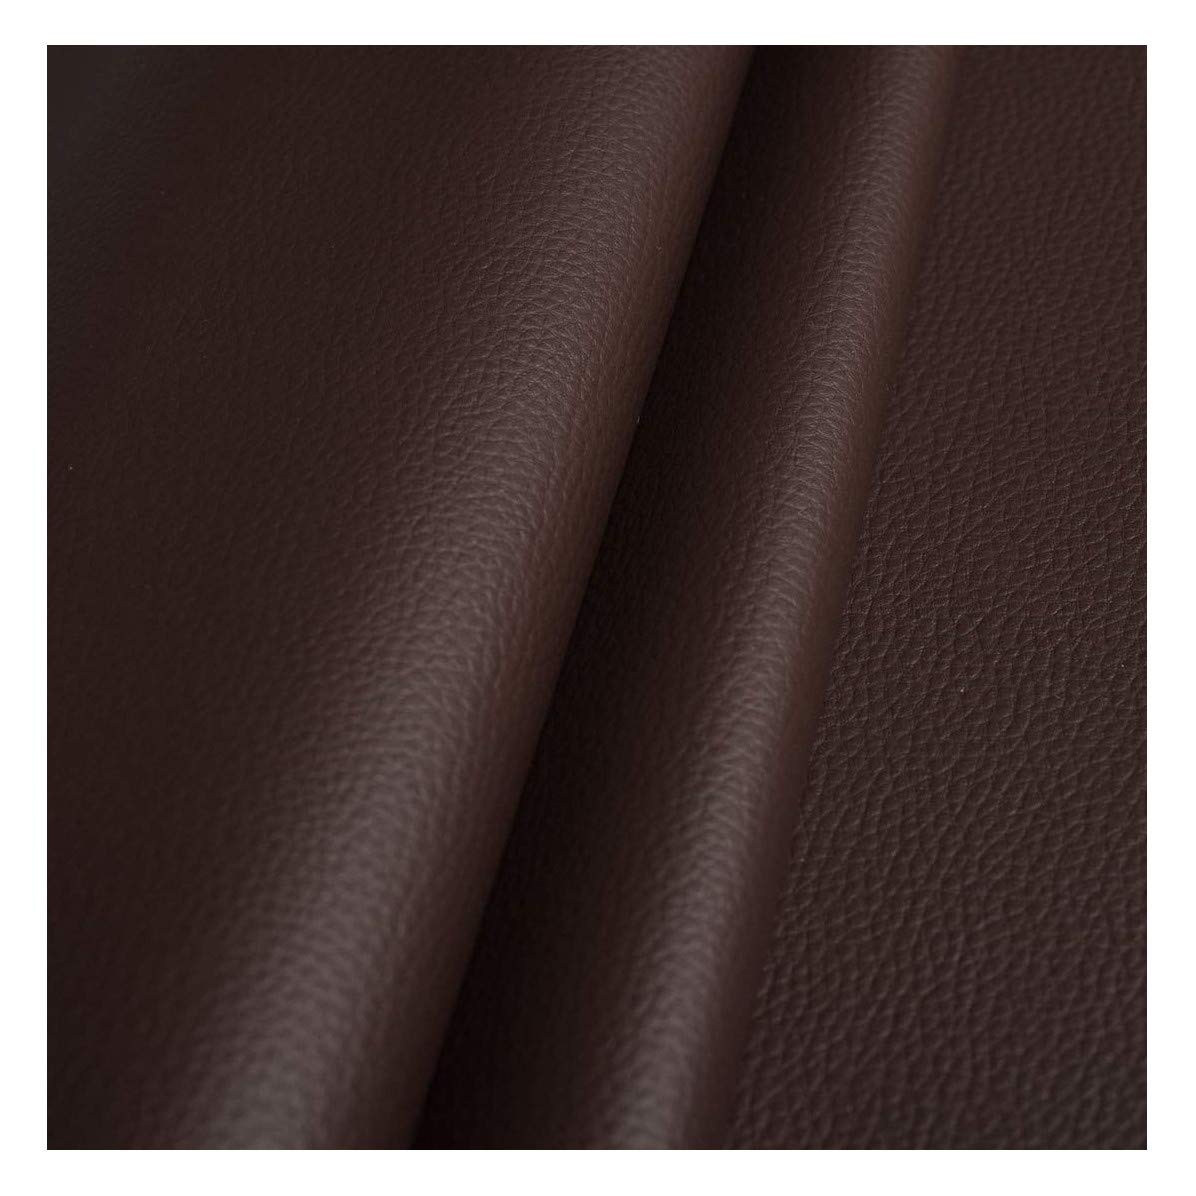 CHOCOLATE DARK BROWN FAUX LEATHER LEATHERETTE MATERIAL HEAVY FEEL PVC VINYL UPHOLSTERY FABRIC PER 1 METRE X 140CM